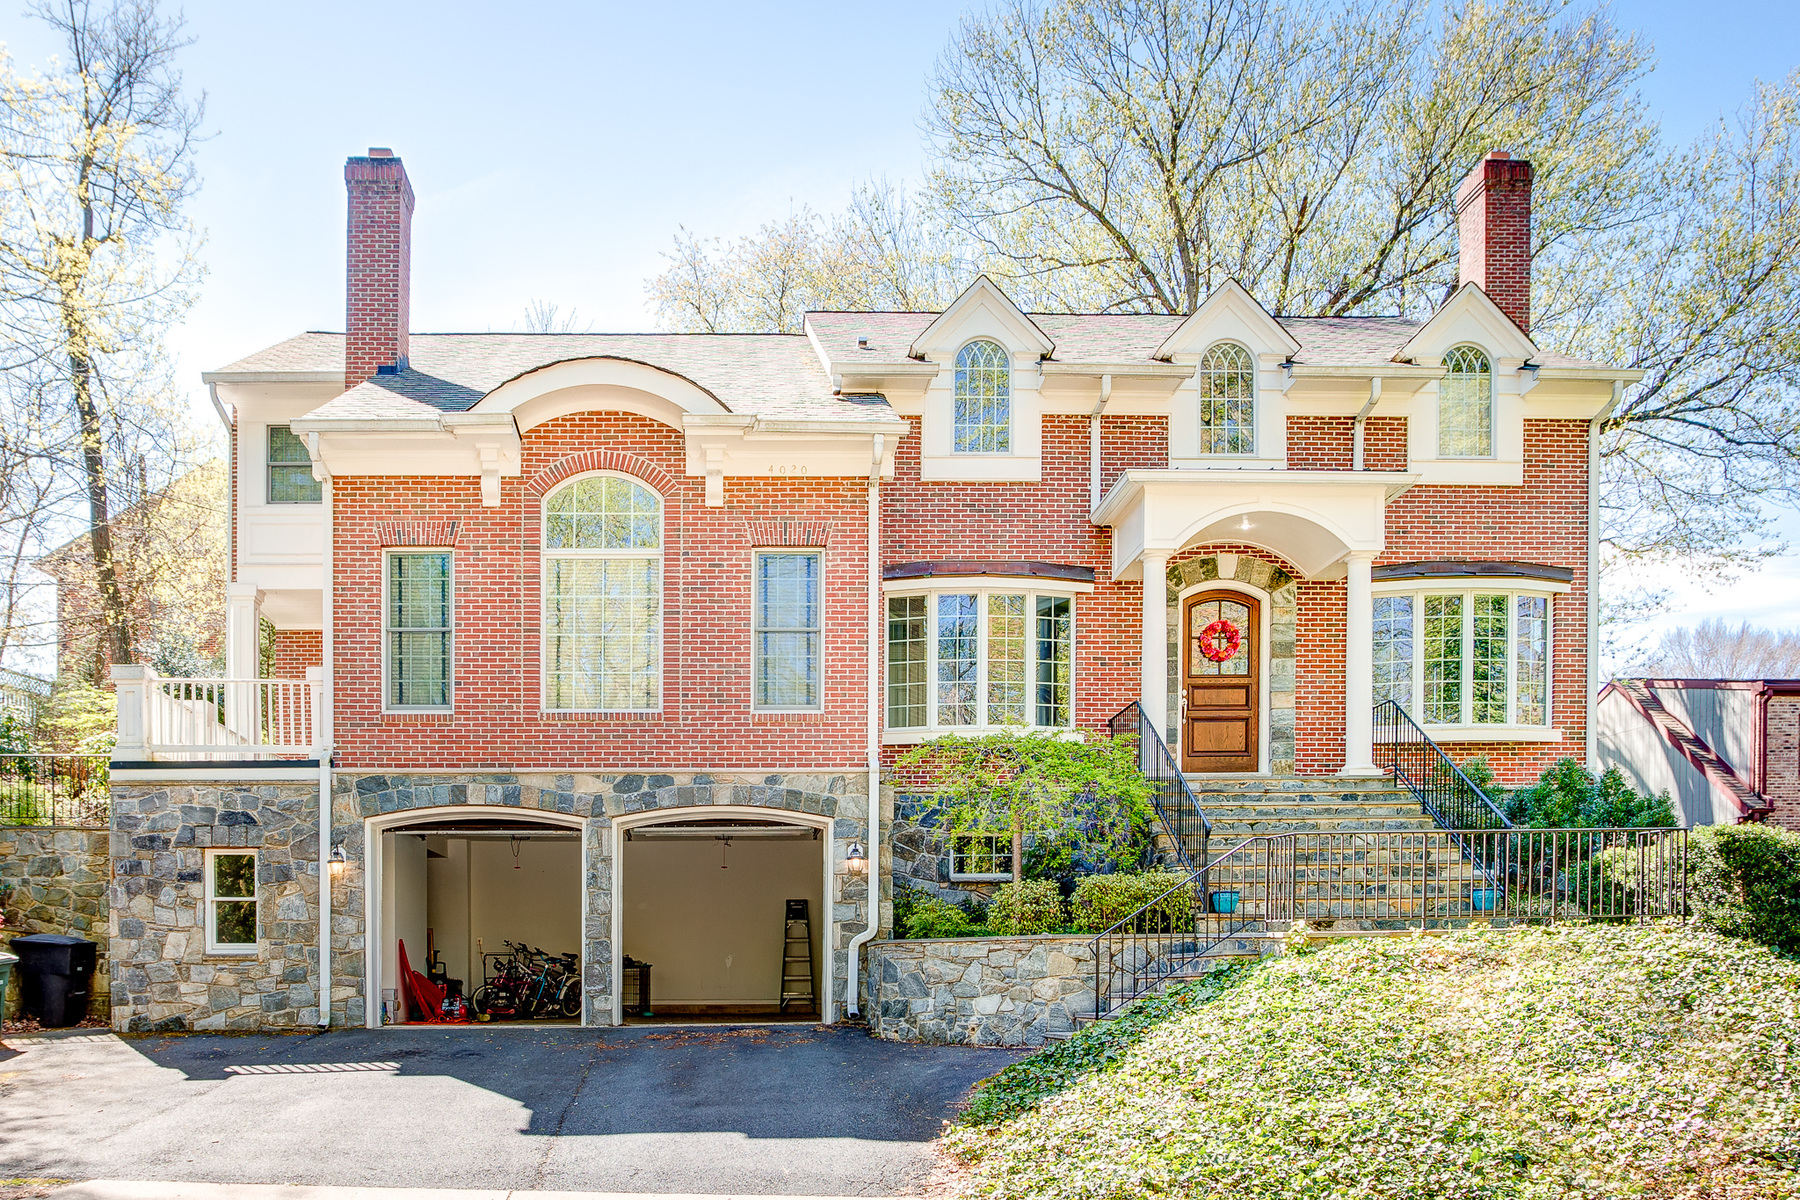 Single Family Home for Sale at Arlingwood 4020 Randolph Street N Arlington, Virginia, 22207 United States